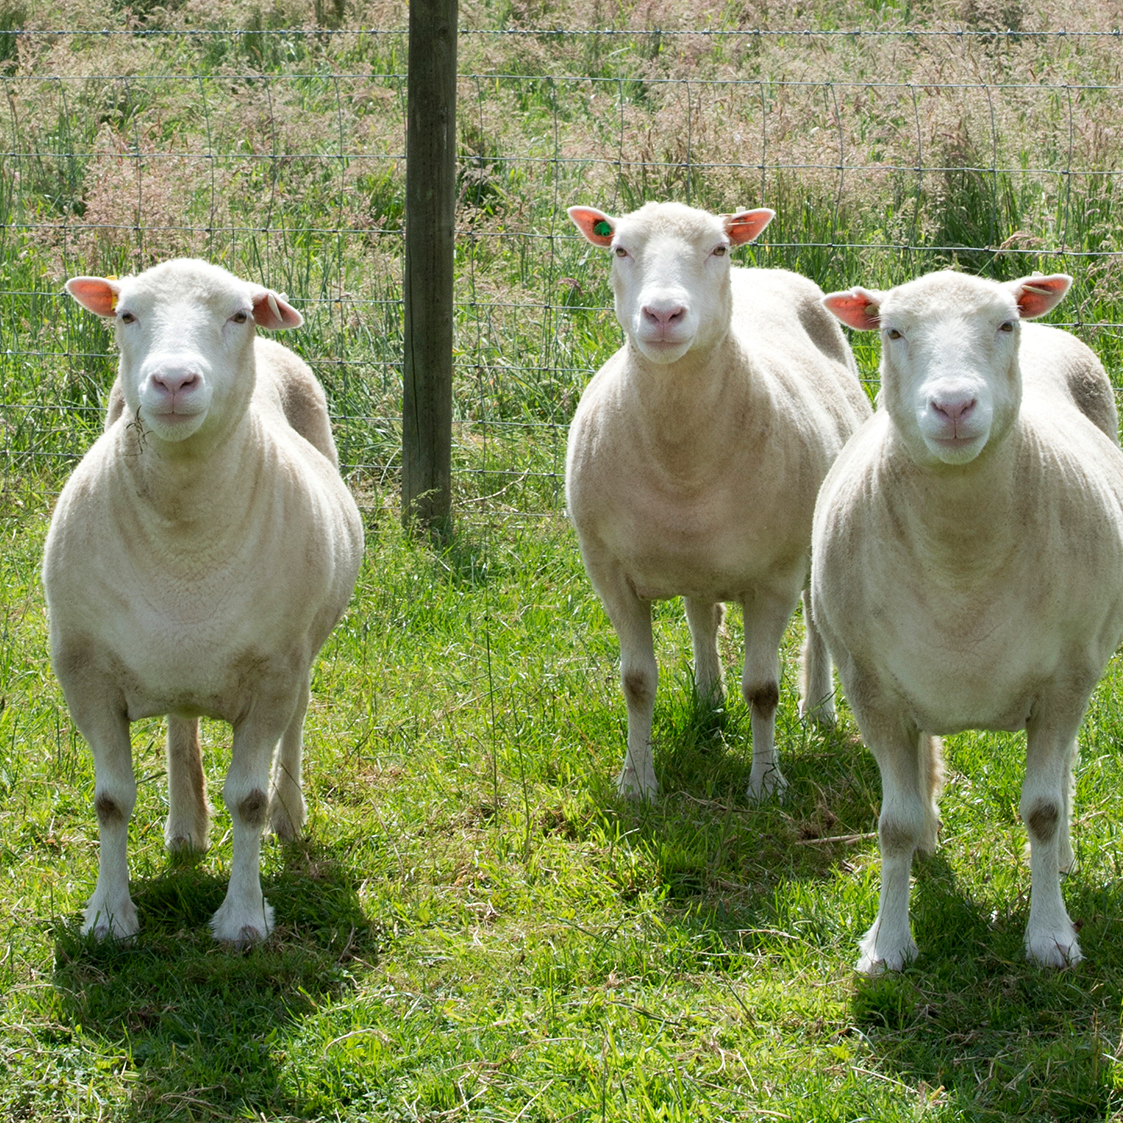 Image for 'Clone Sisters' Of Dolly The Sheep Are Alive And Kicking